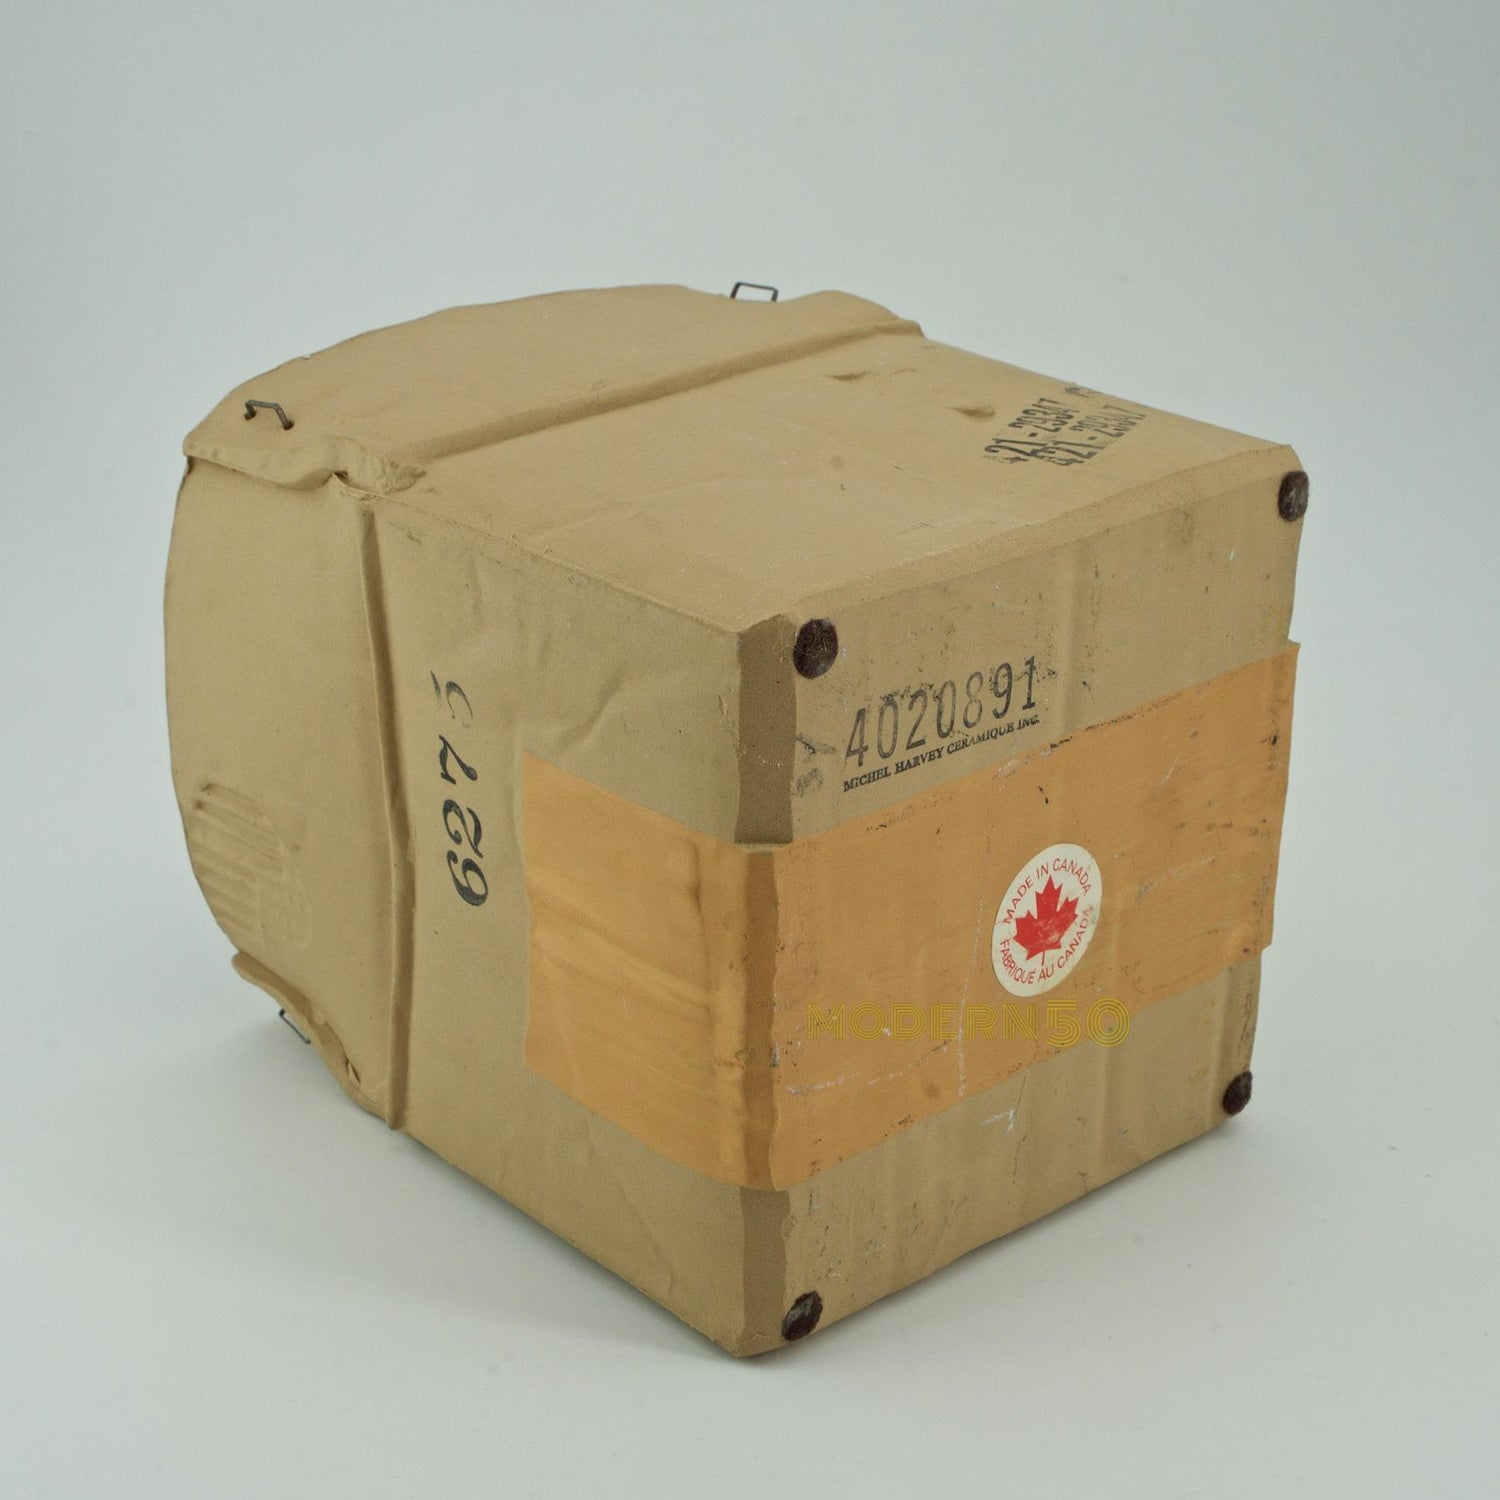 1970s Pop Art Ceramic Hypereal Sculpture Cardboard Box Flower Vase Warhol Era For Sale At 1stdibs